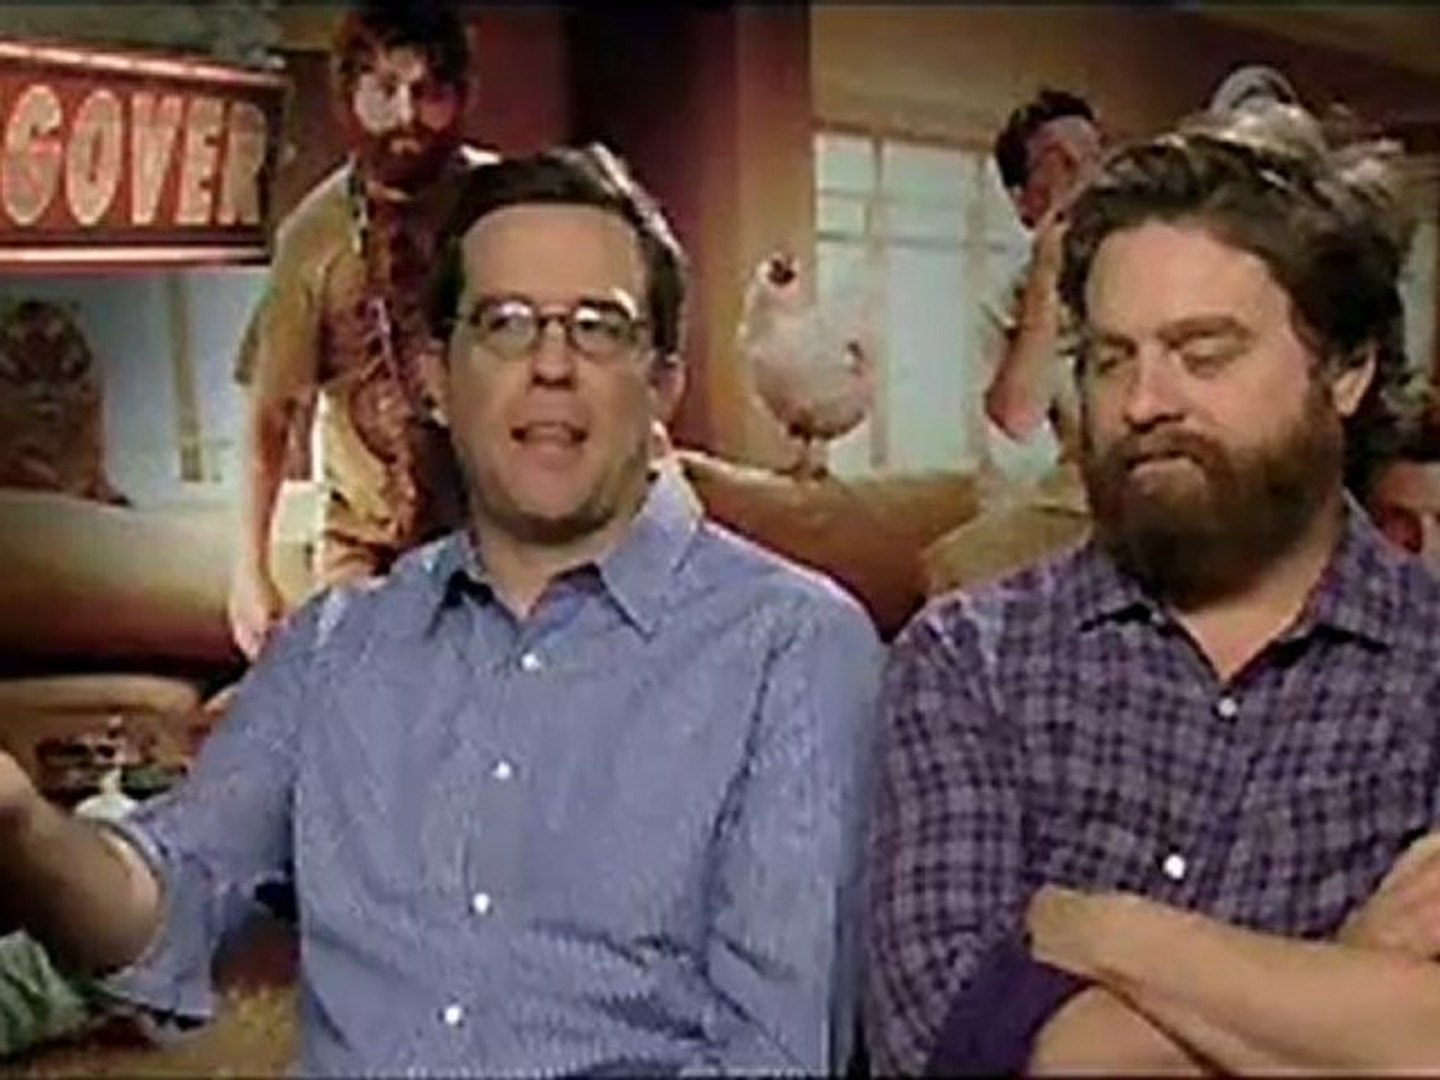 The Hangover - Exclusive Interview With Ed Helms And Zach Galifianakis